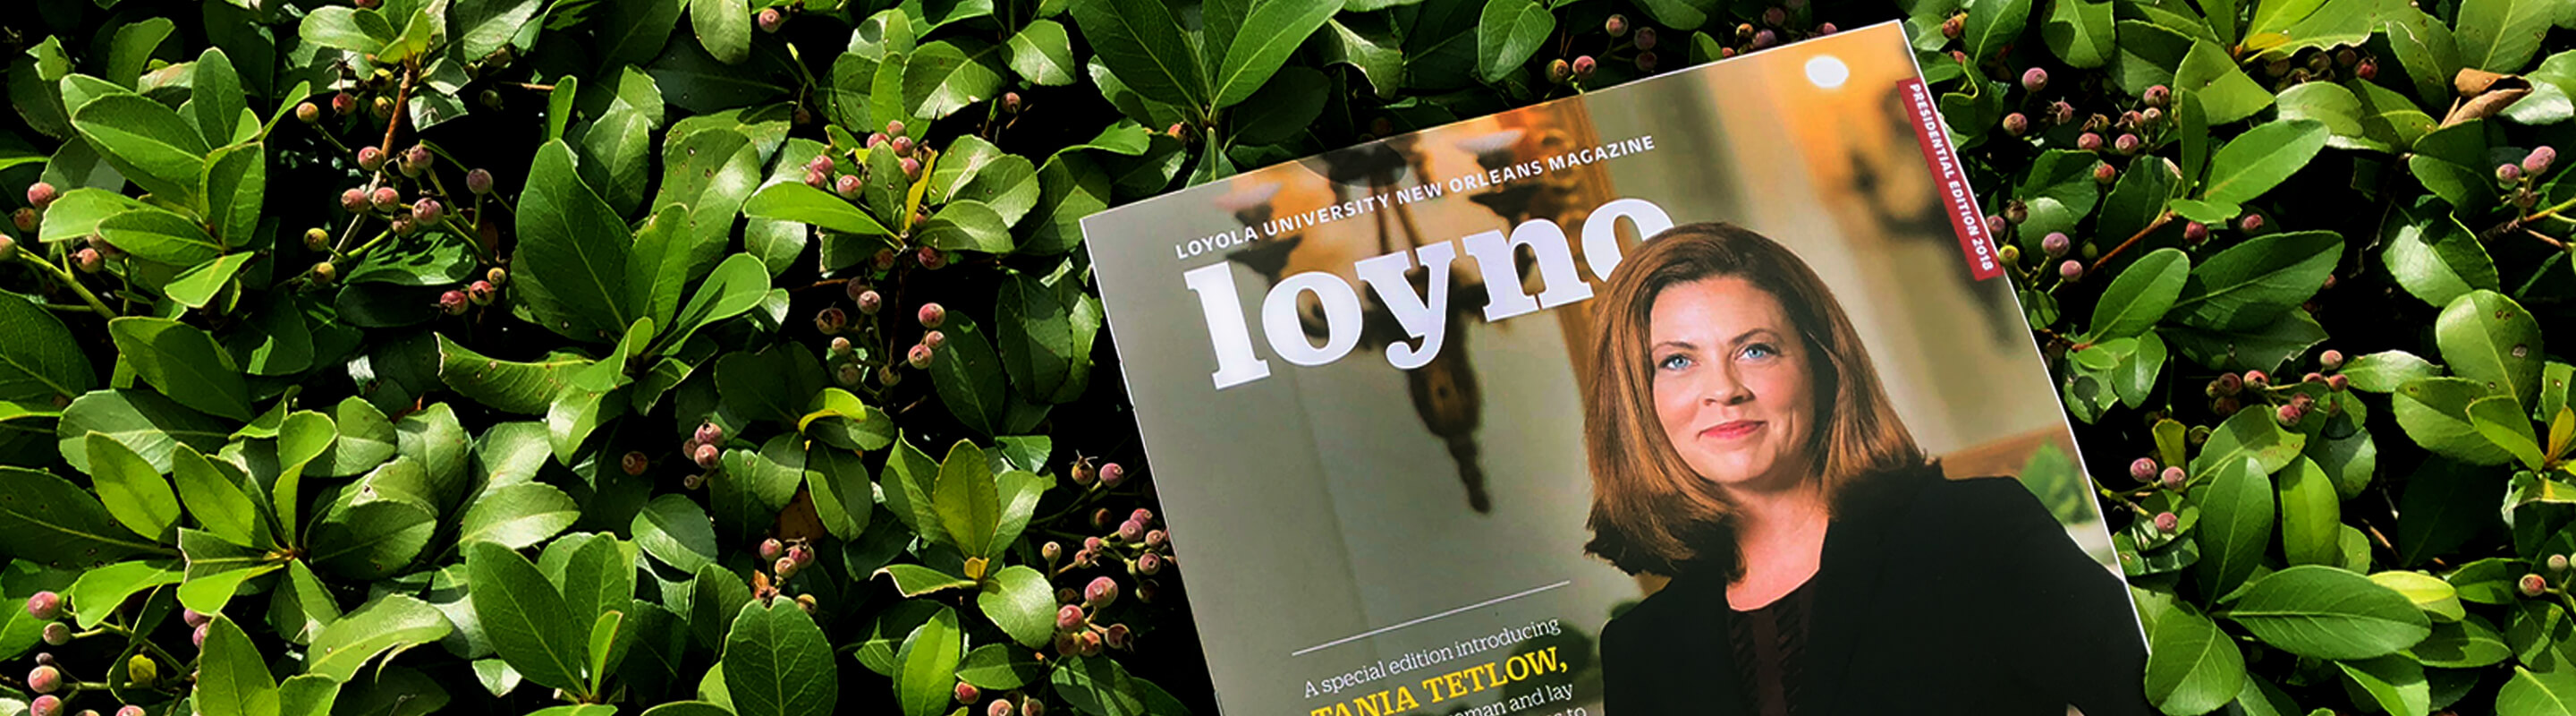 Presidential issue of loyno sitting among foliage